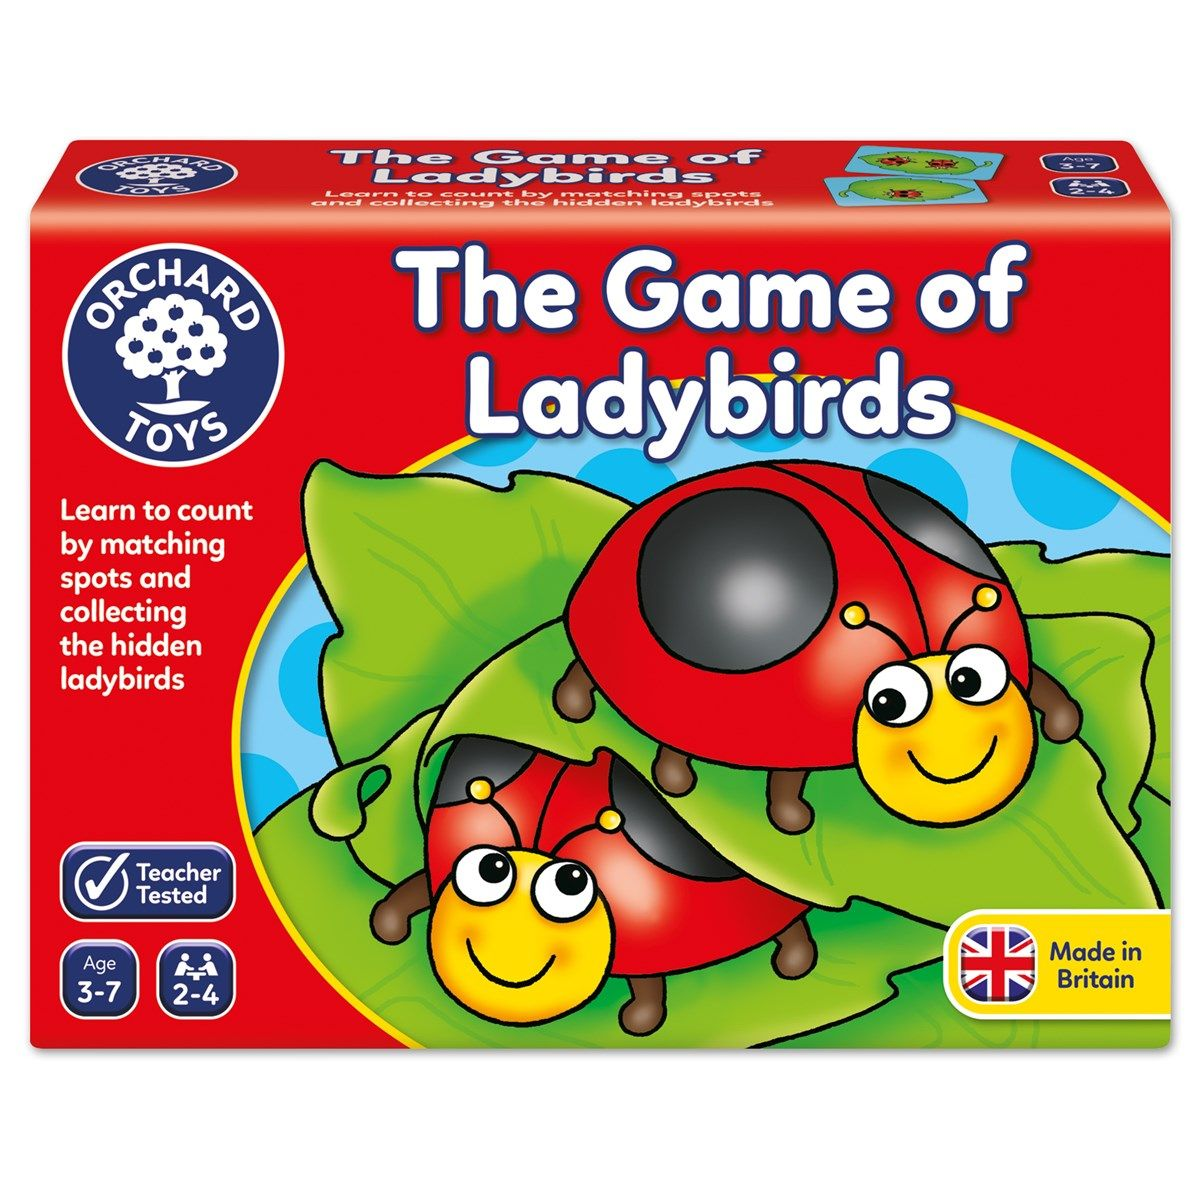 The Game of Ladybirds Orchard toys, Hobby kids games